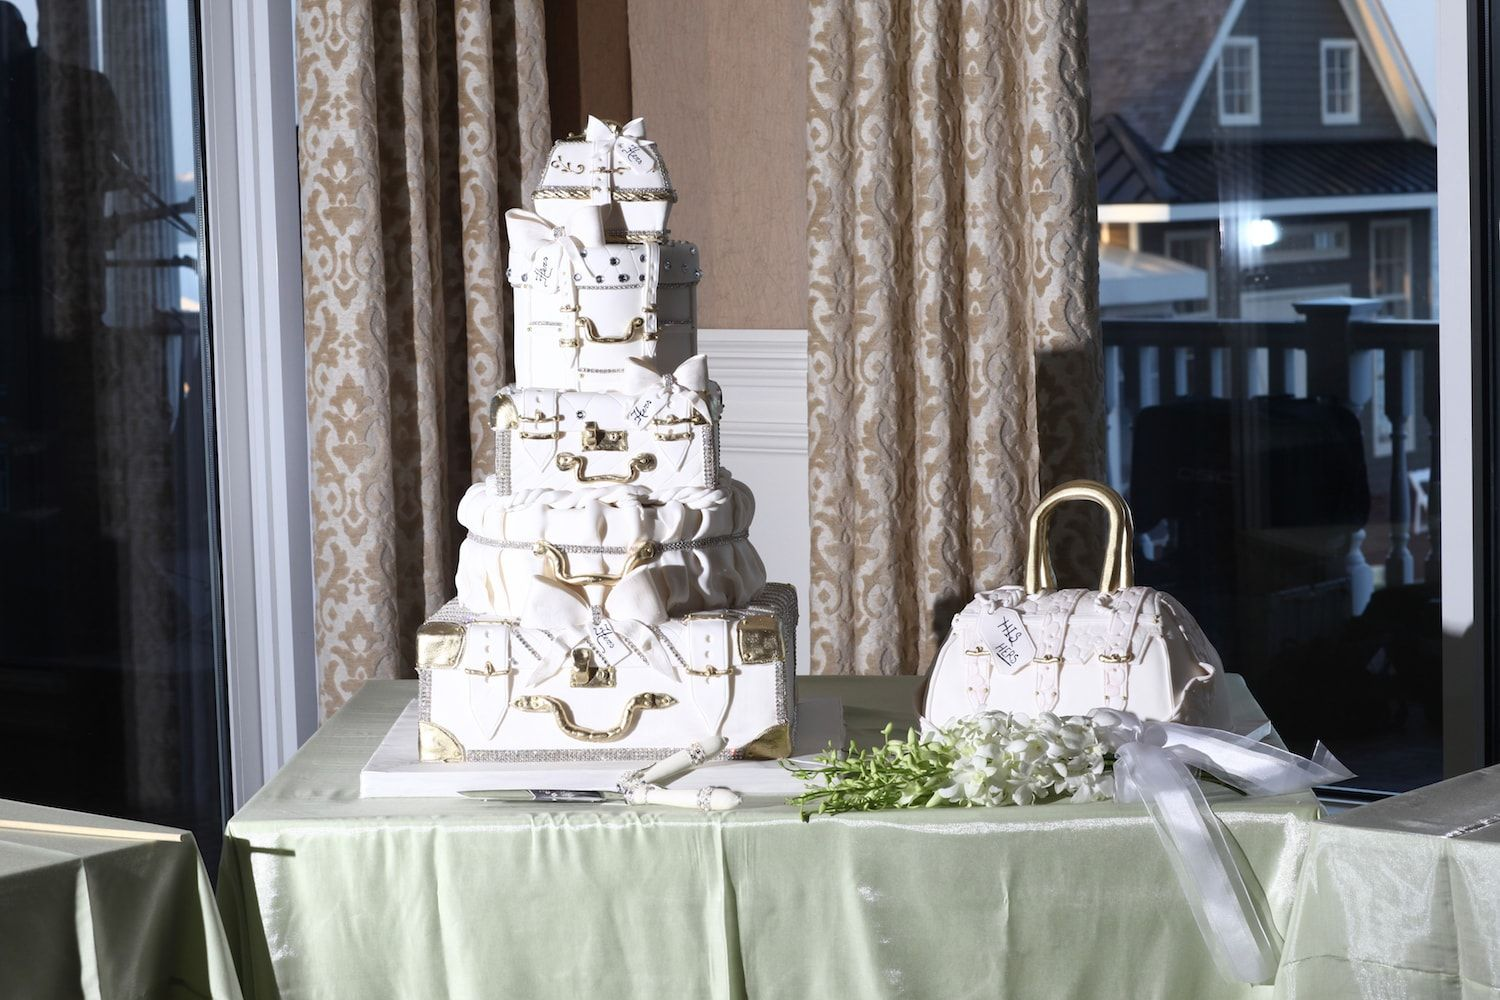 wedding cake | All the Best Weddings &  Celebrations | Photo courtesy of Ann Coen Photography